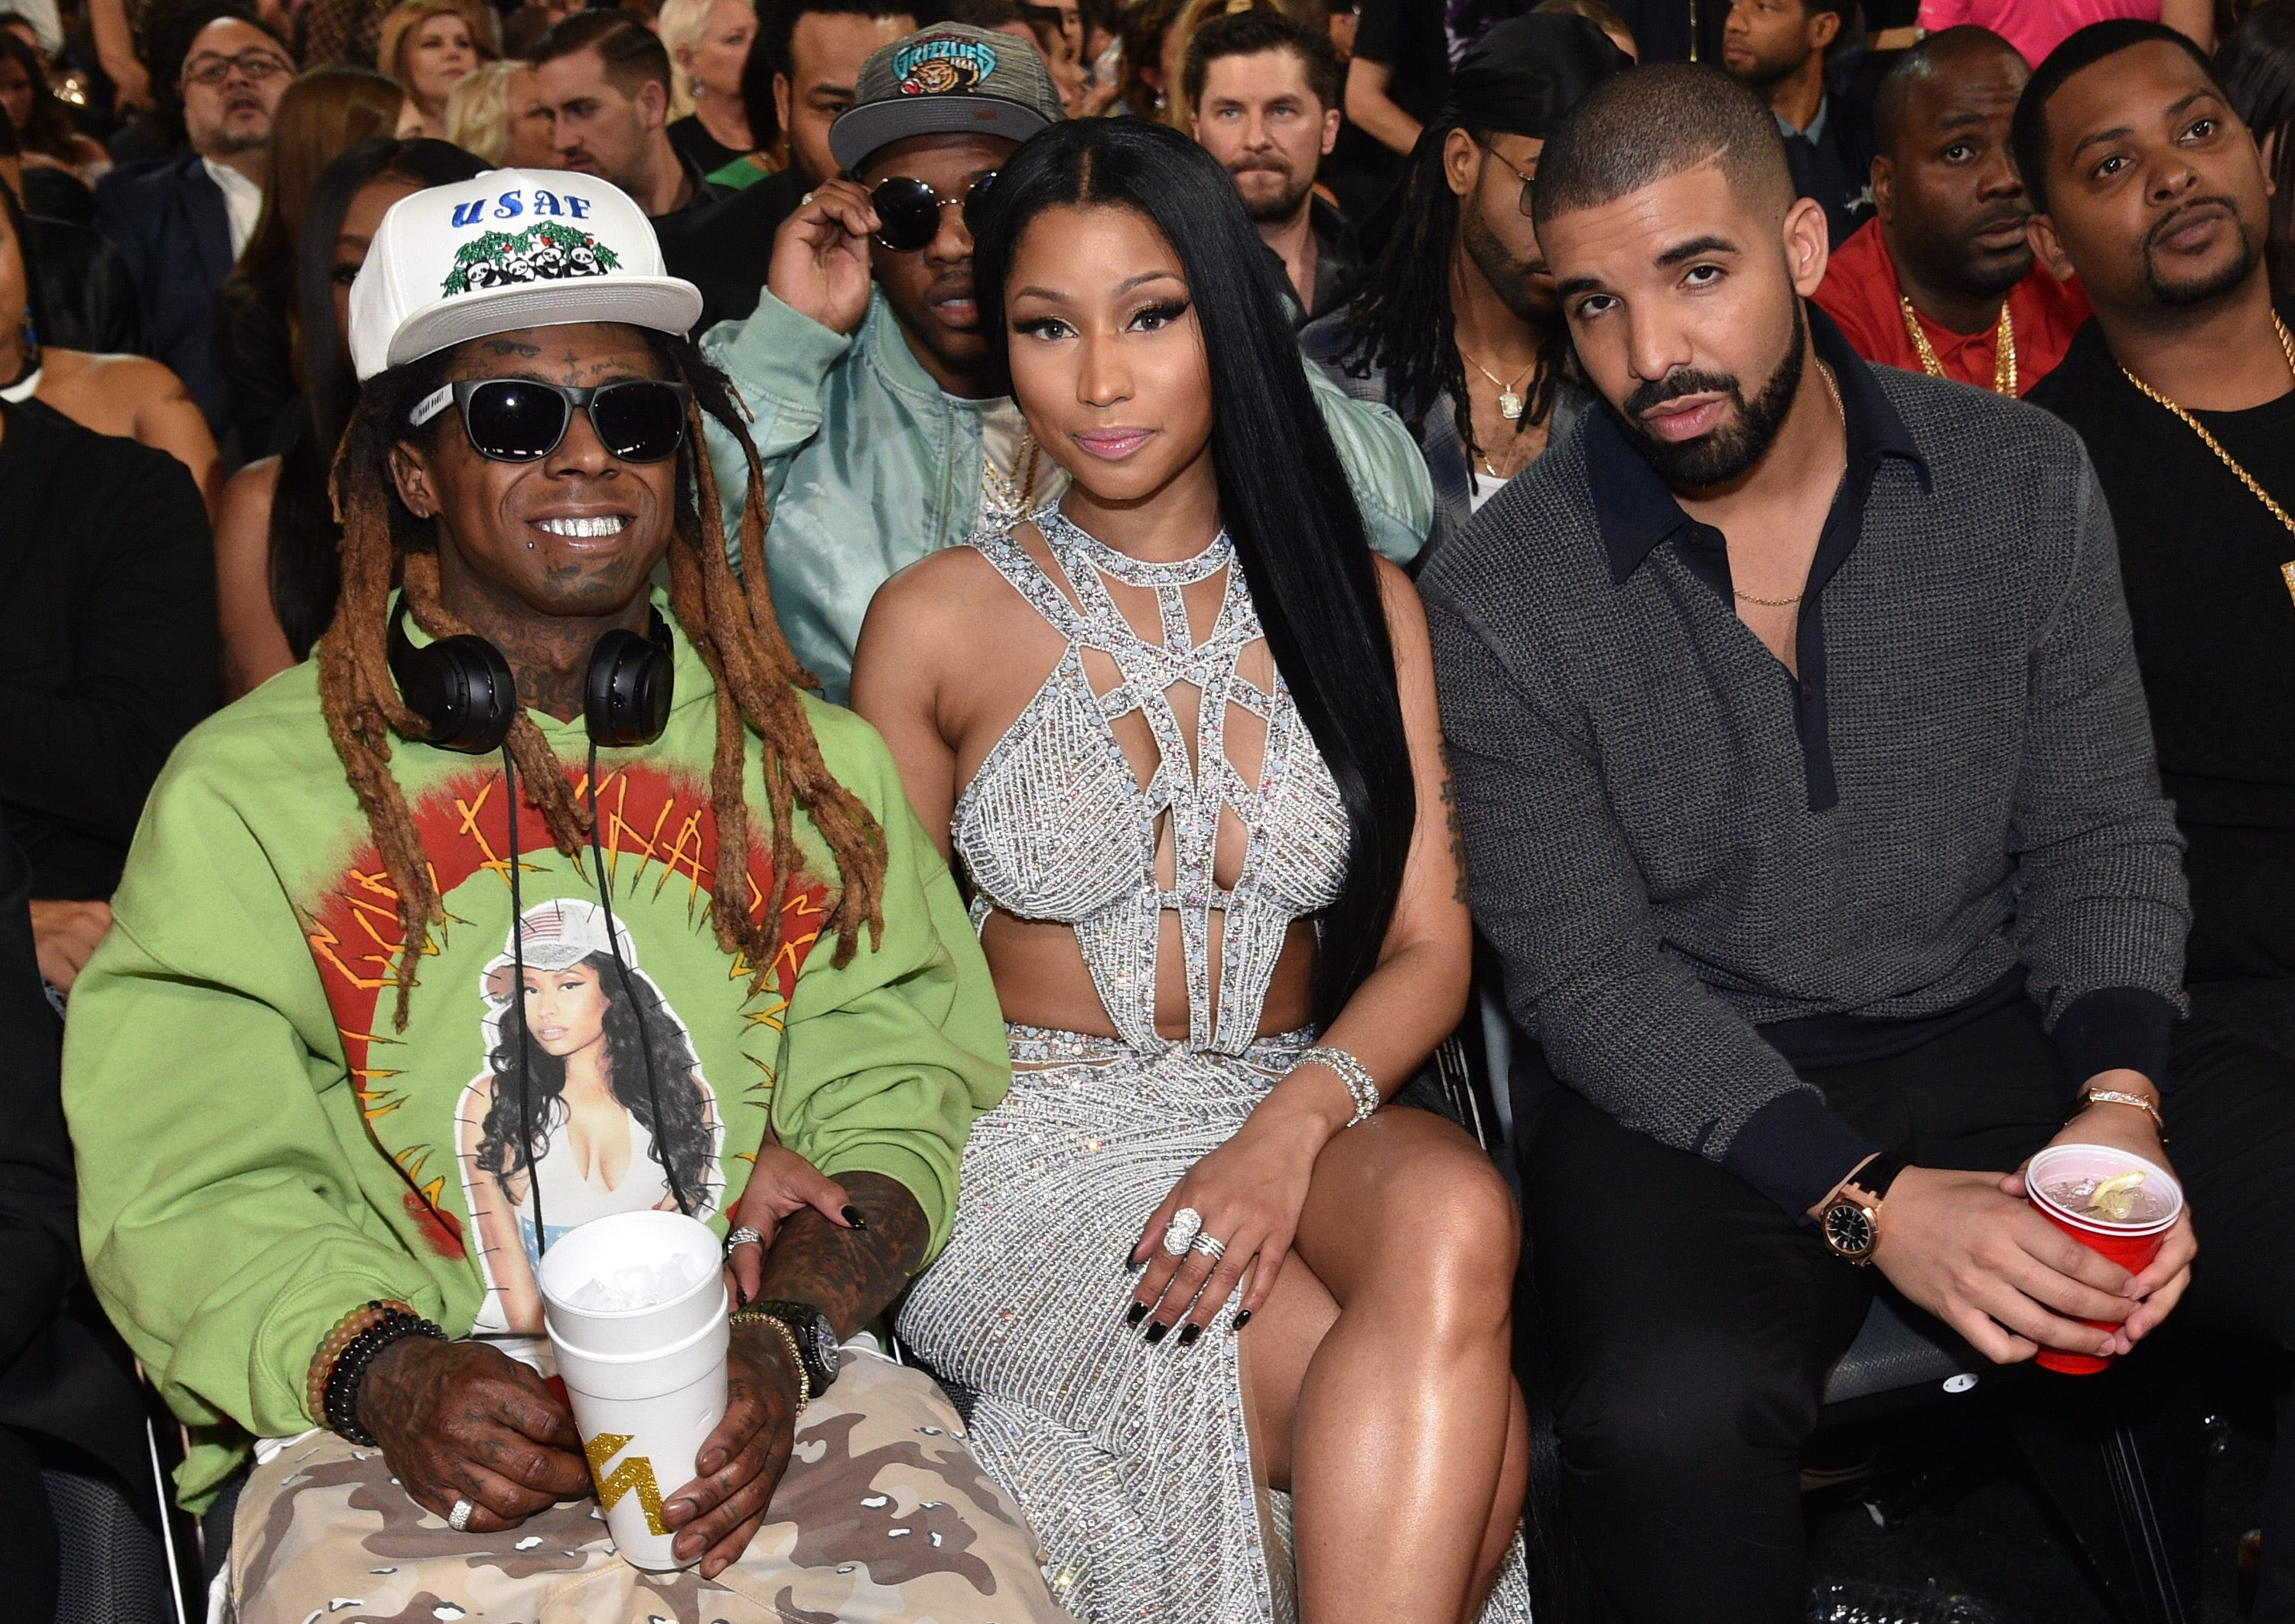 Cash Money Records Has a Bleak Future Without Drake and Lil